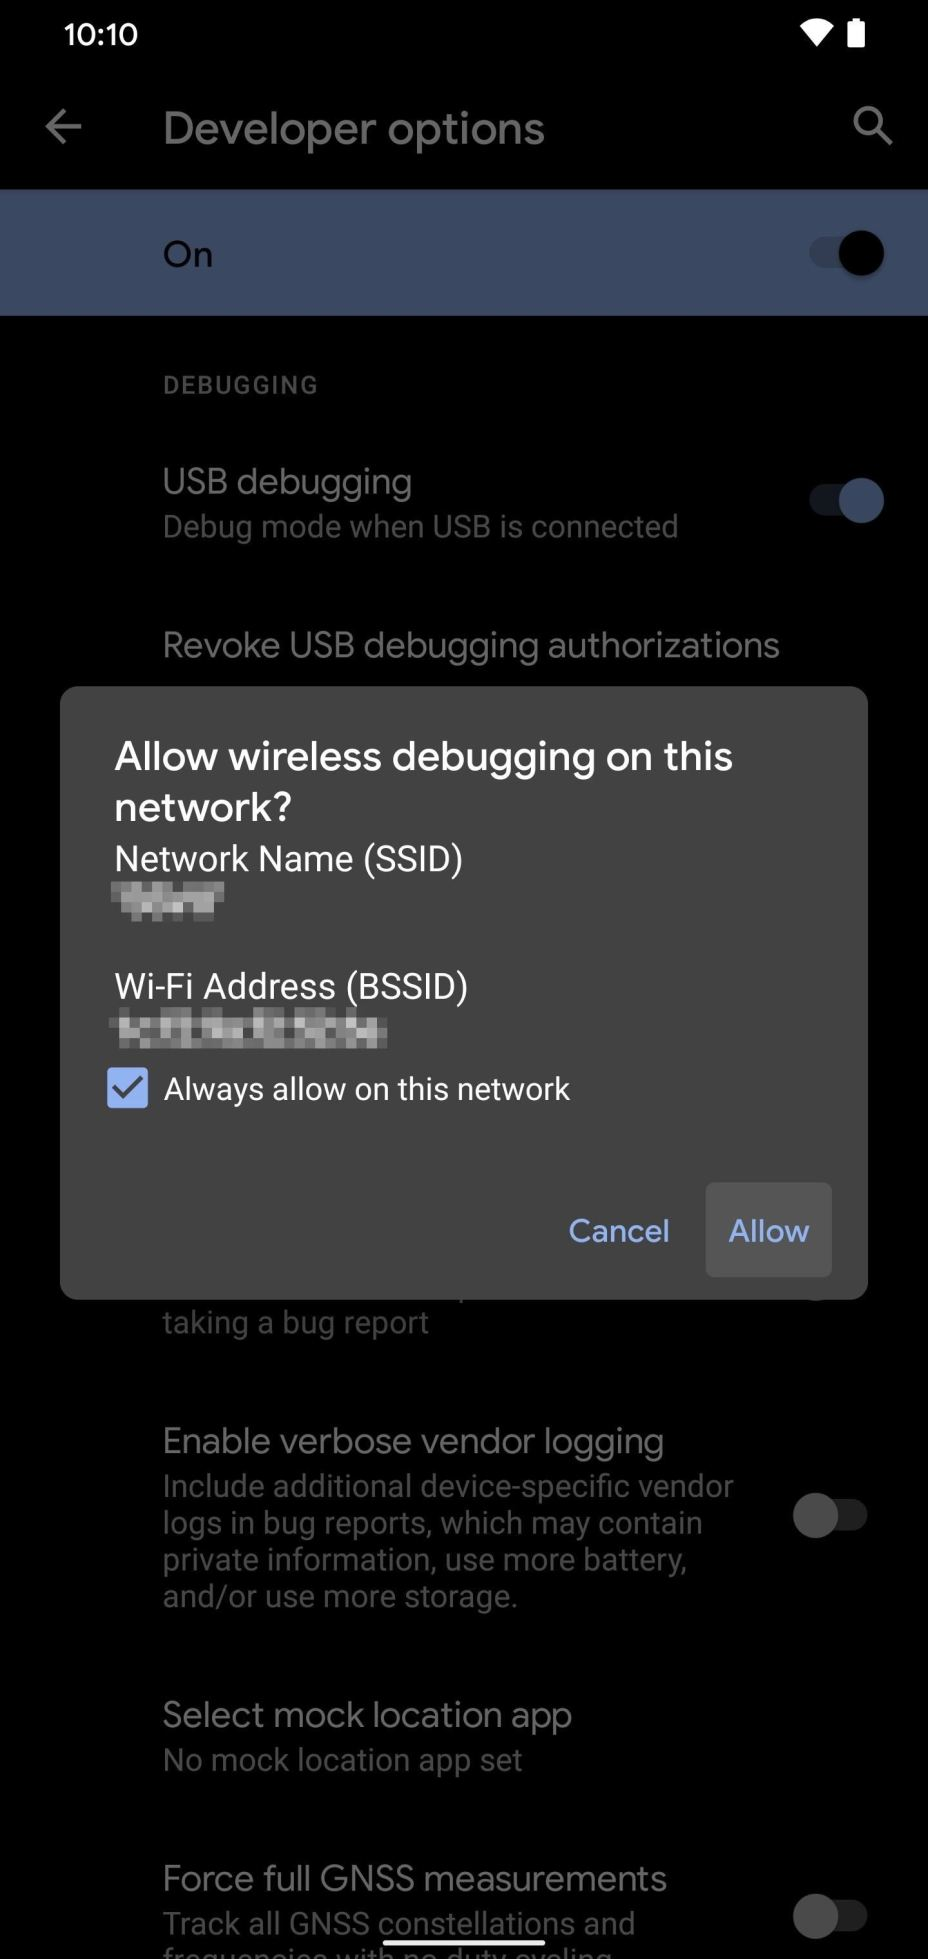 How to Set up Wireless Debugging on Android 11 to Send ADB Commands Without a USB Cable